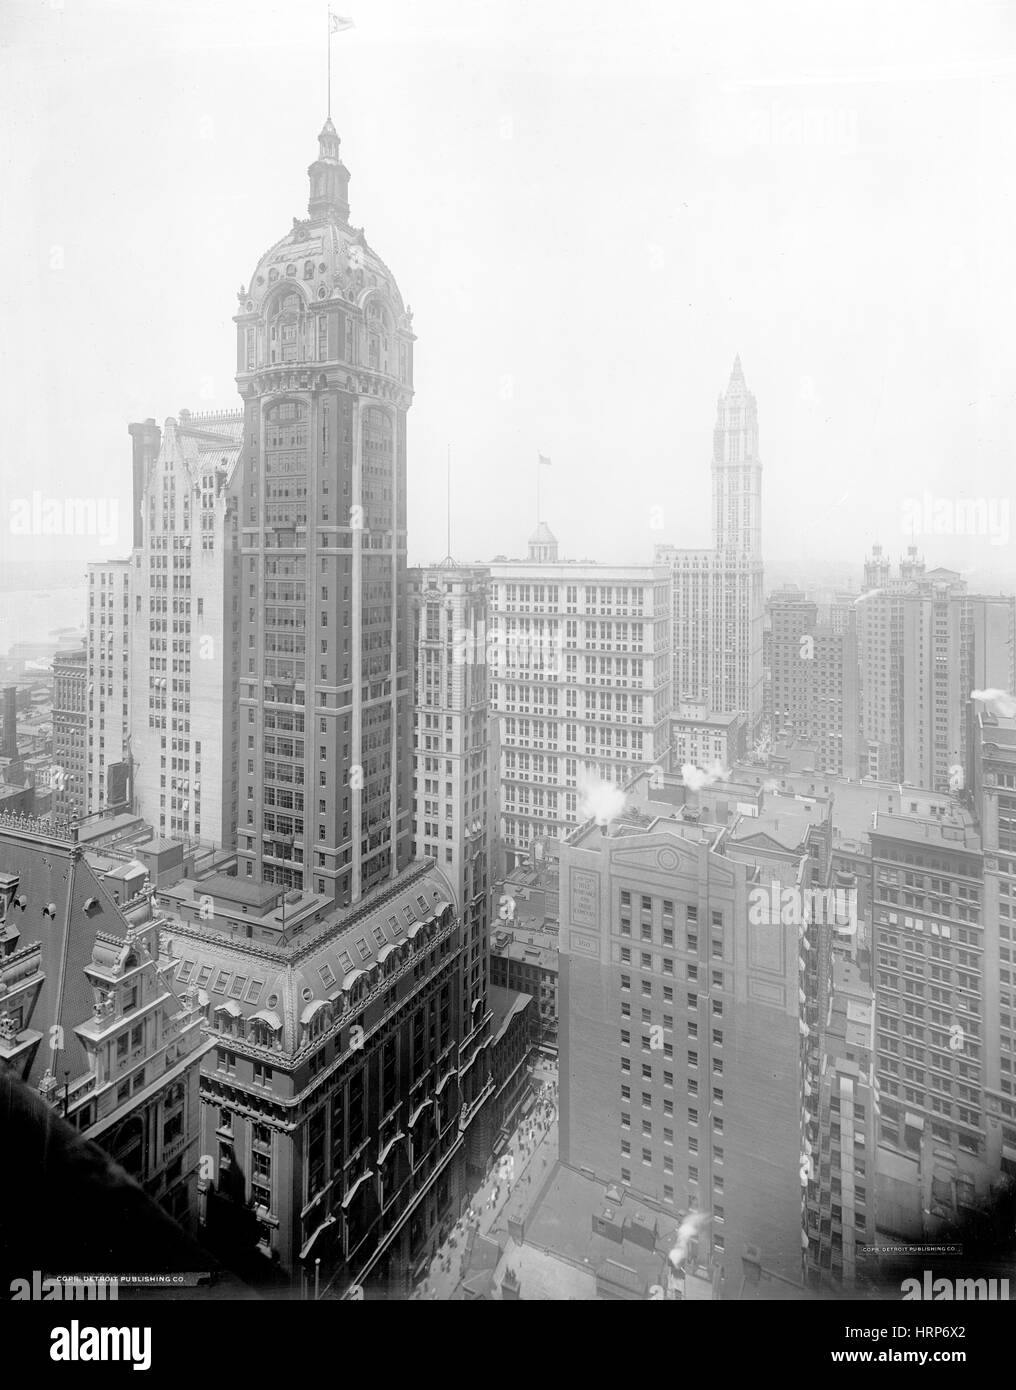 NYC, Singer Building, 1910s - Stock Image